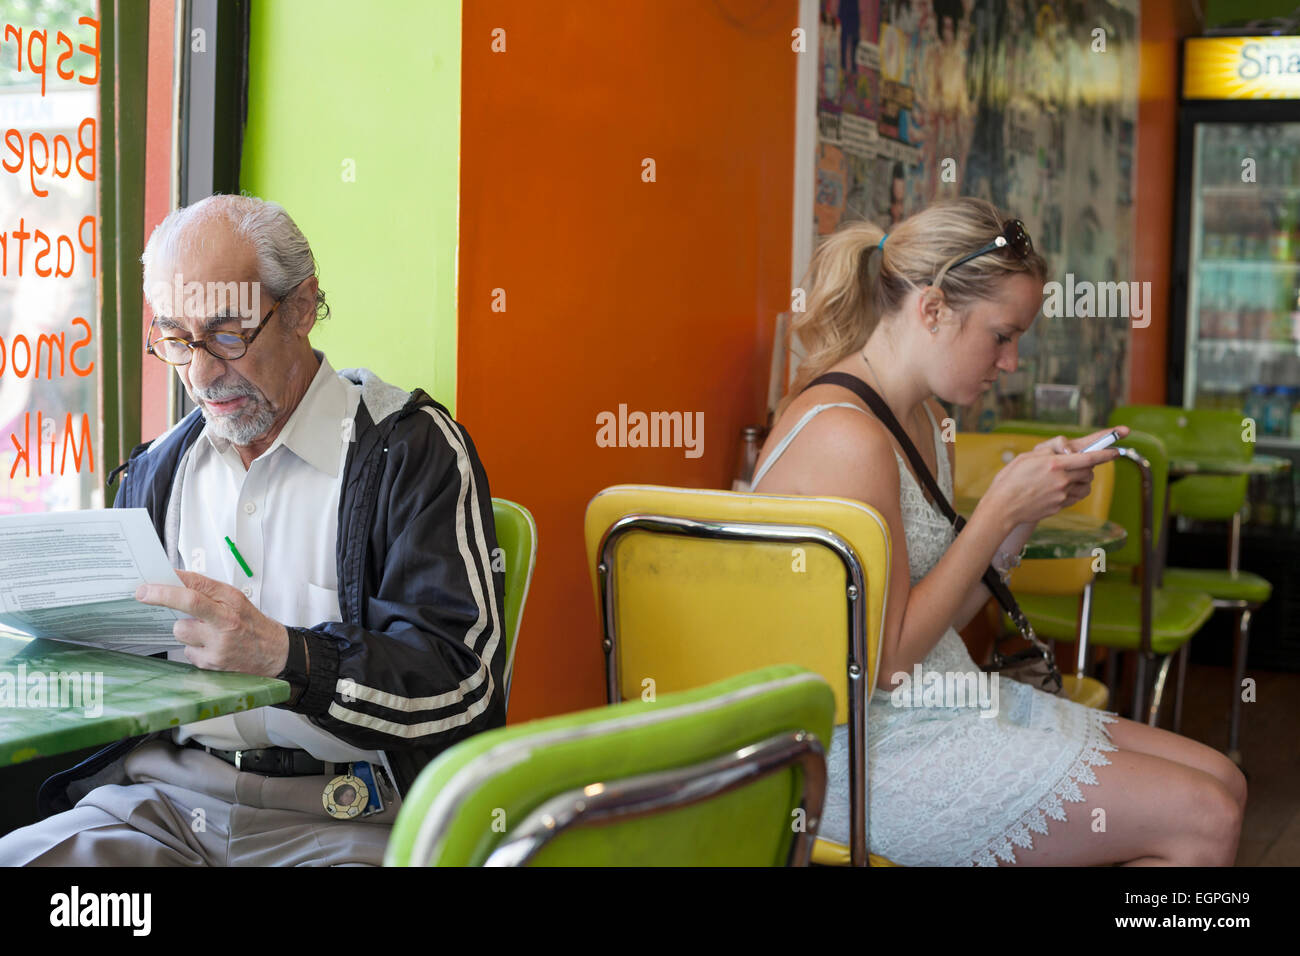 A man and woman sit in a restaurant immersed in their own activities. - Stock Image